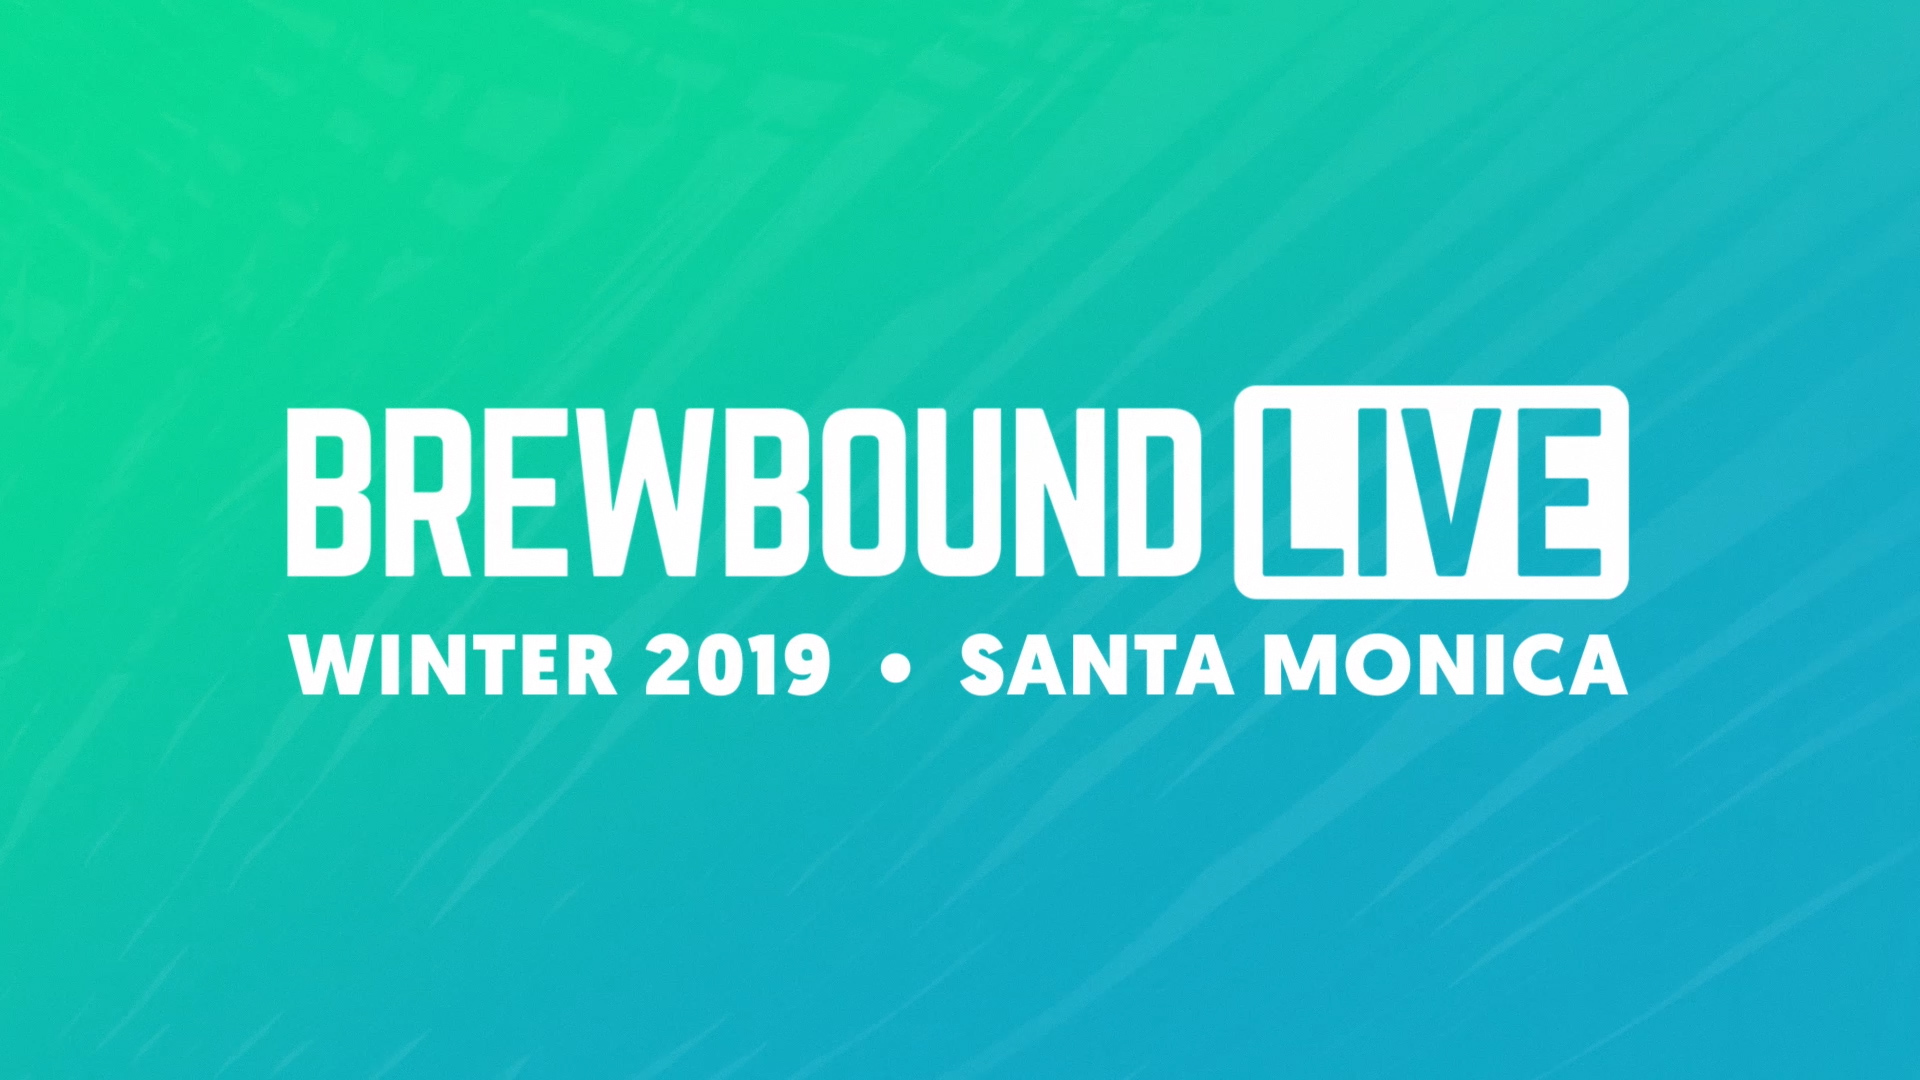 Brewbound Live Winter 2019